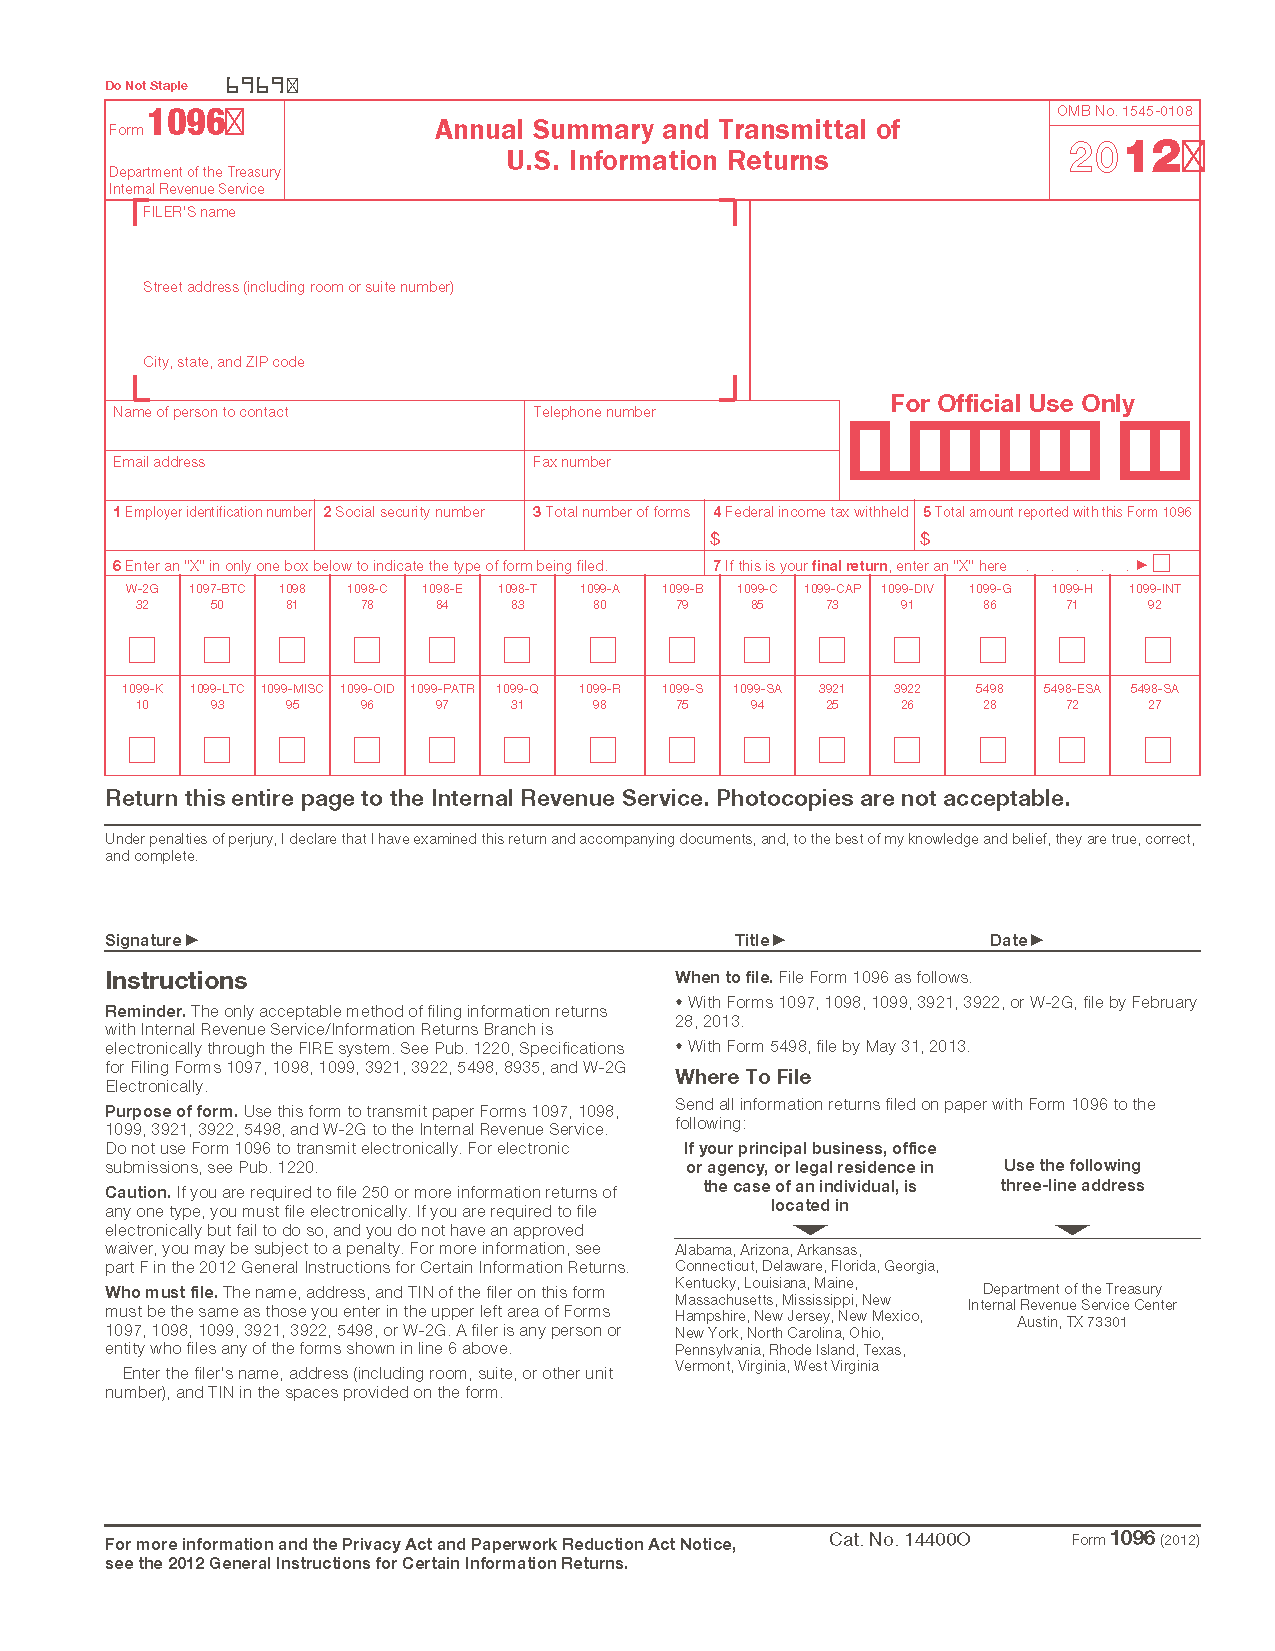 Form 1096 Annual Summary and Transmittal of U.S. Information Returns (Info  Copy Only)